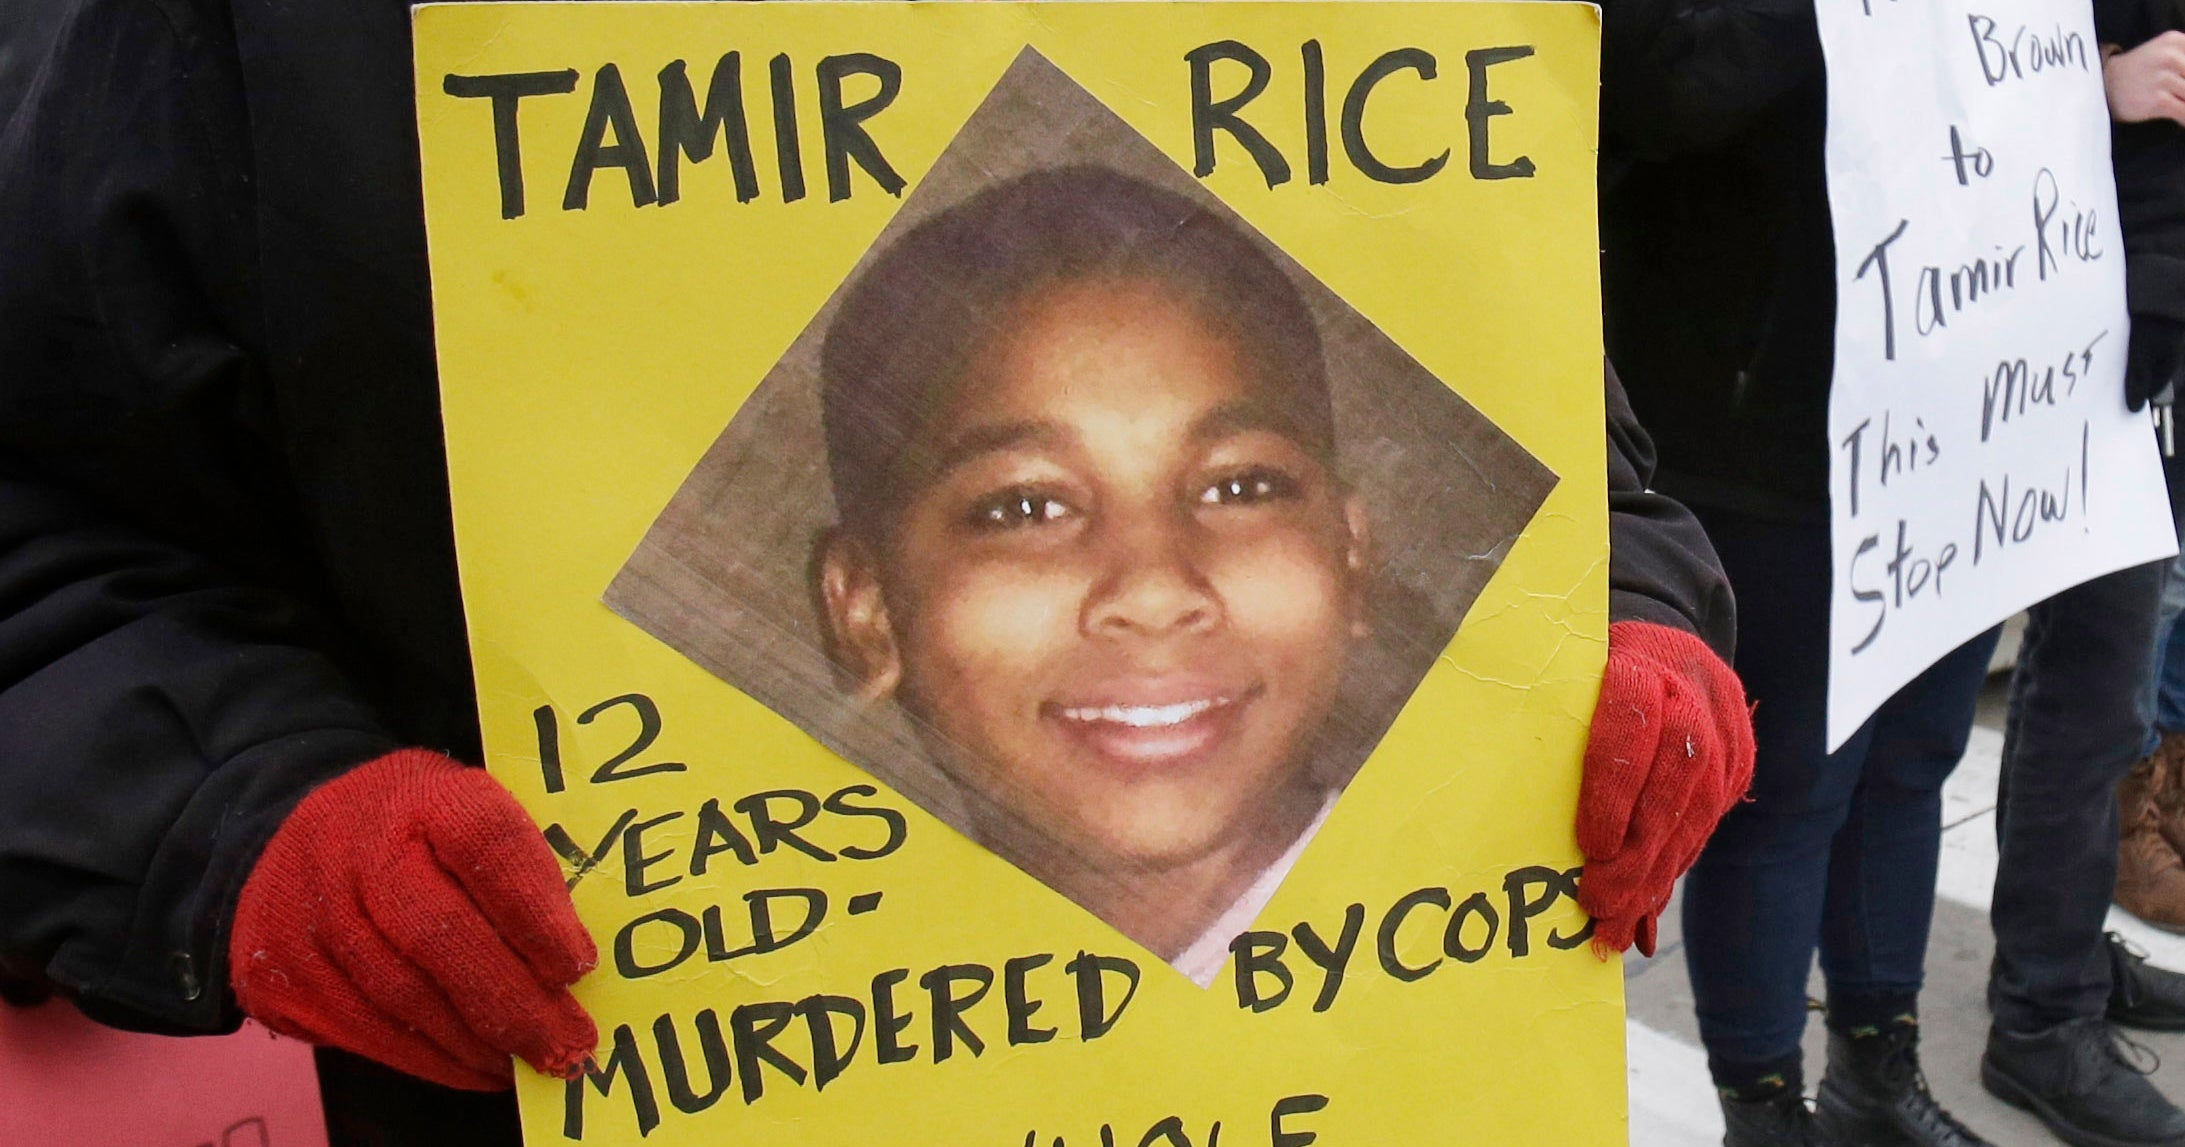 What Excuse Does The Justice Department Have For Not Charging Tamir Rice's Killers?